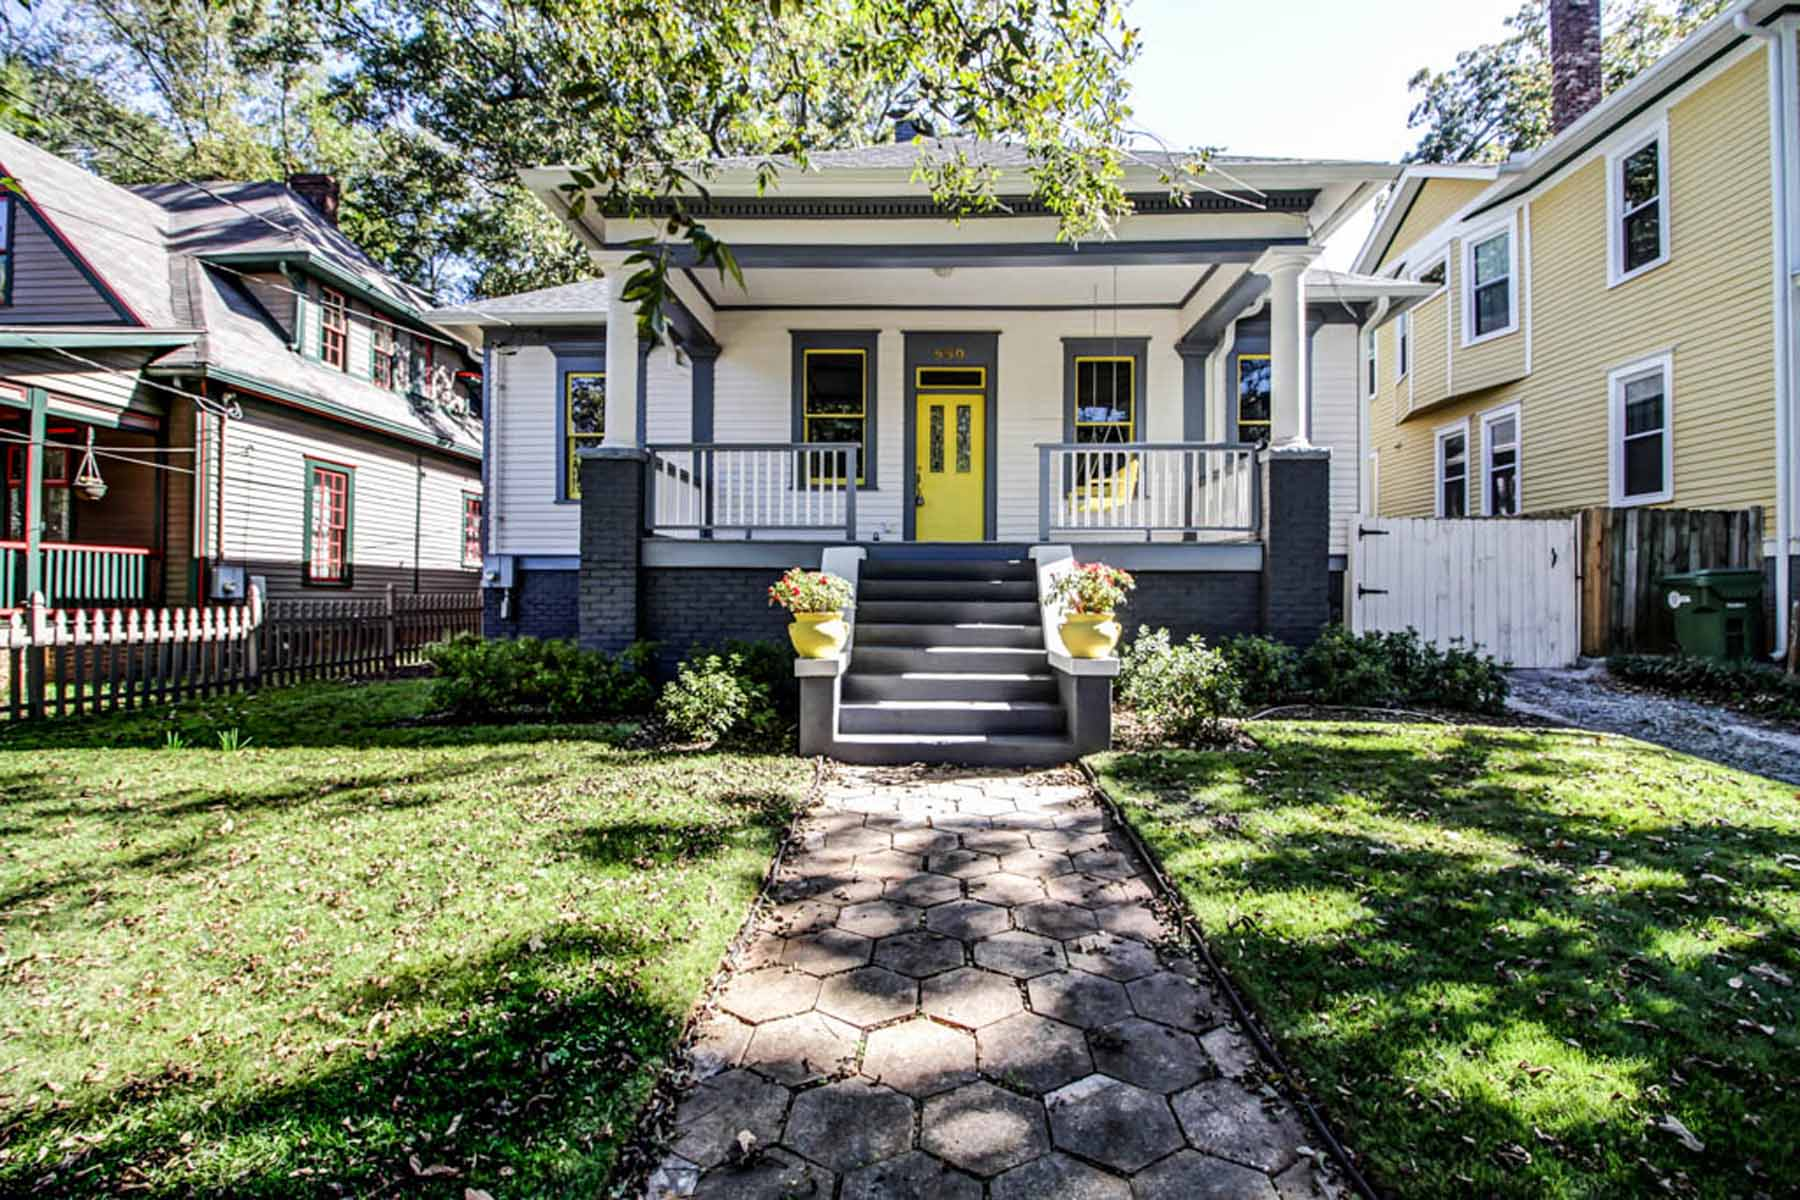 Property For Sale at Modern Total Renovation! Restored Bungalow In Grant Park